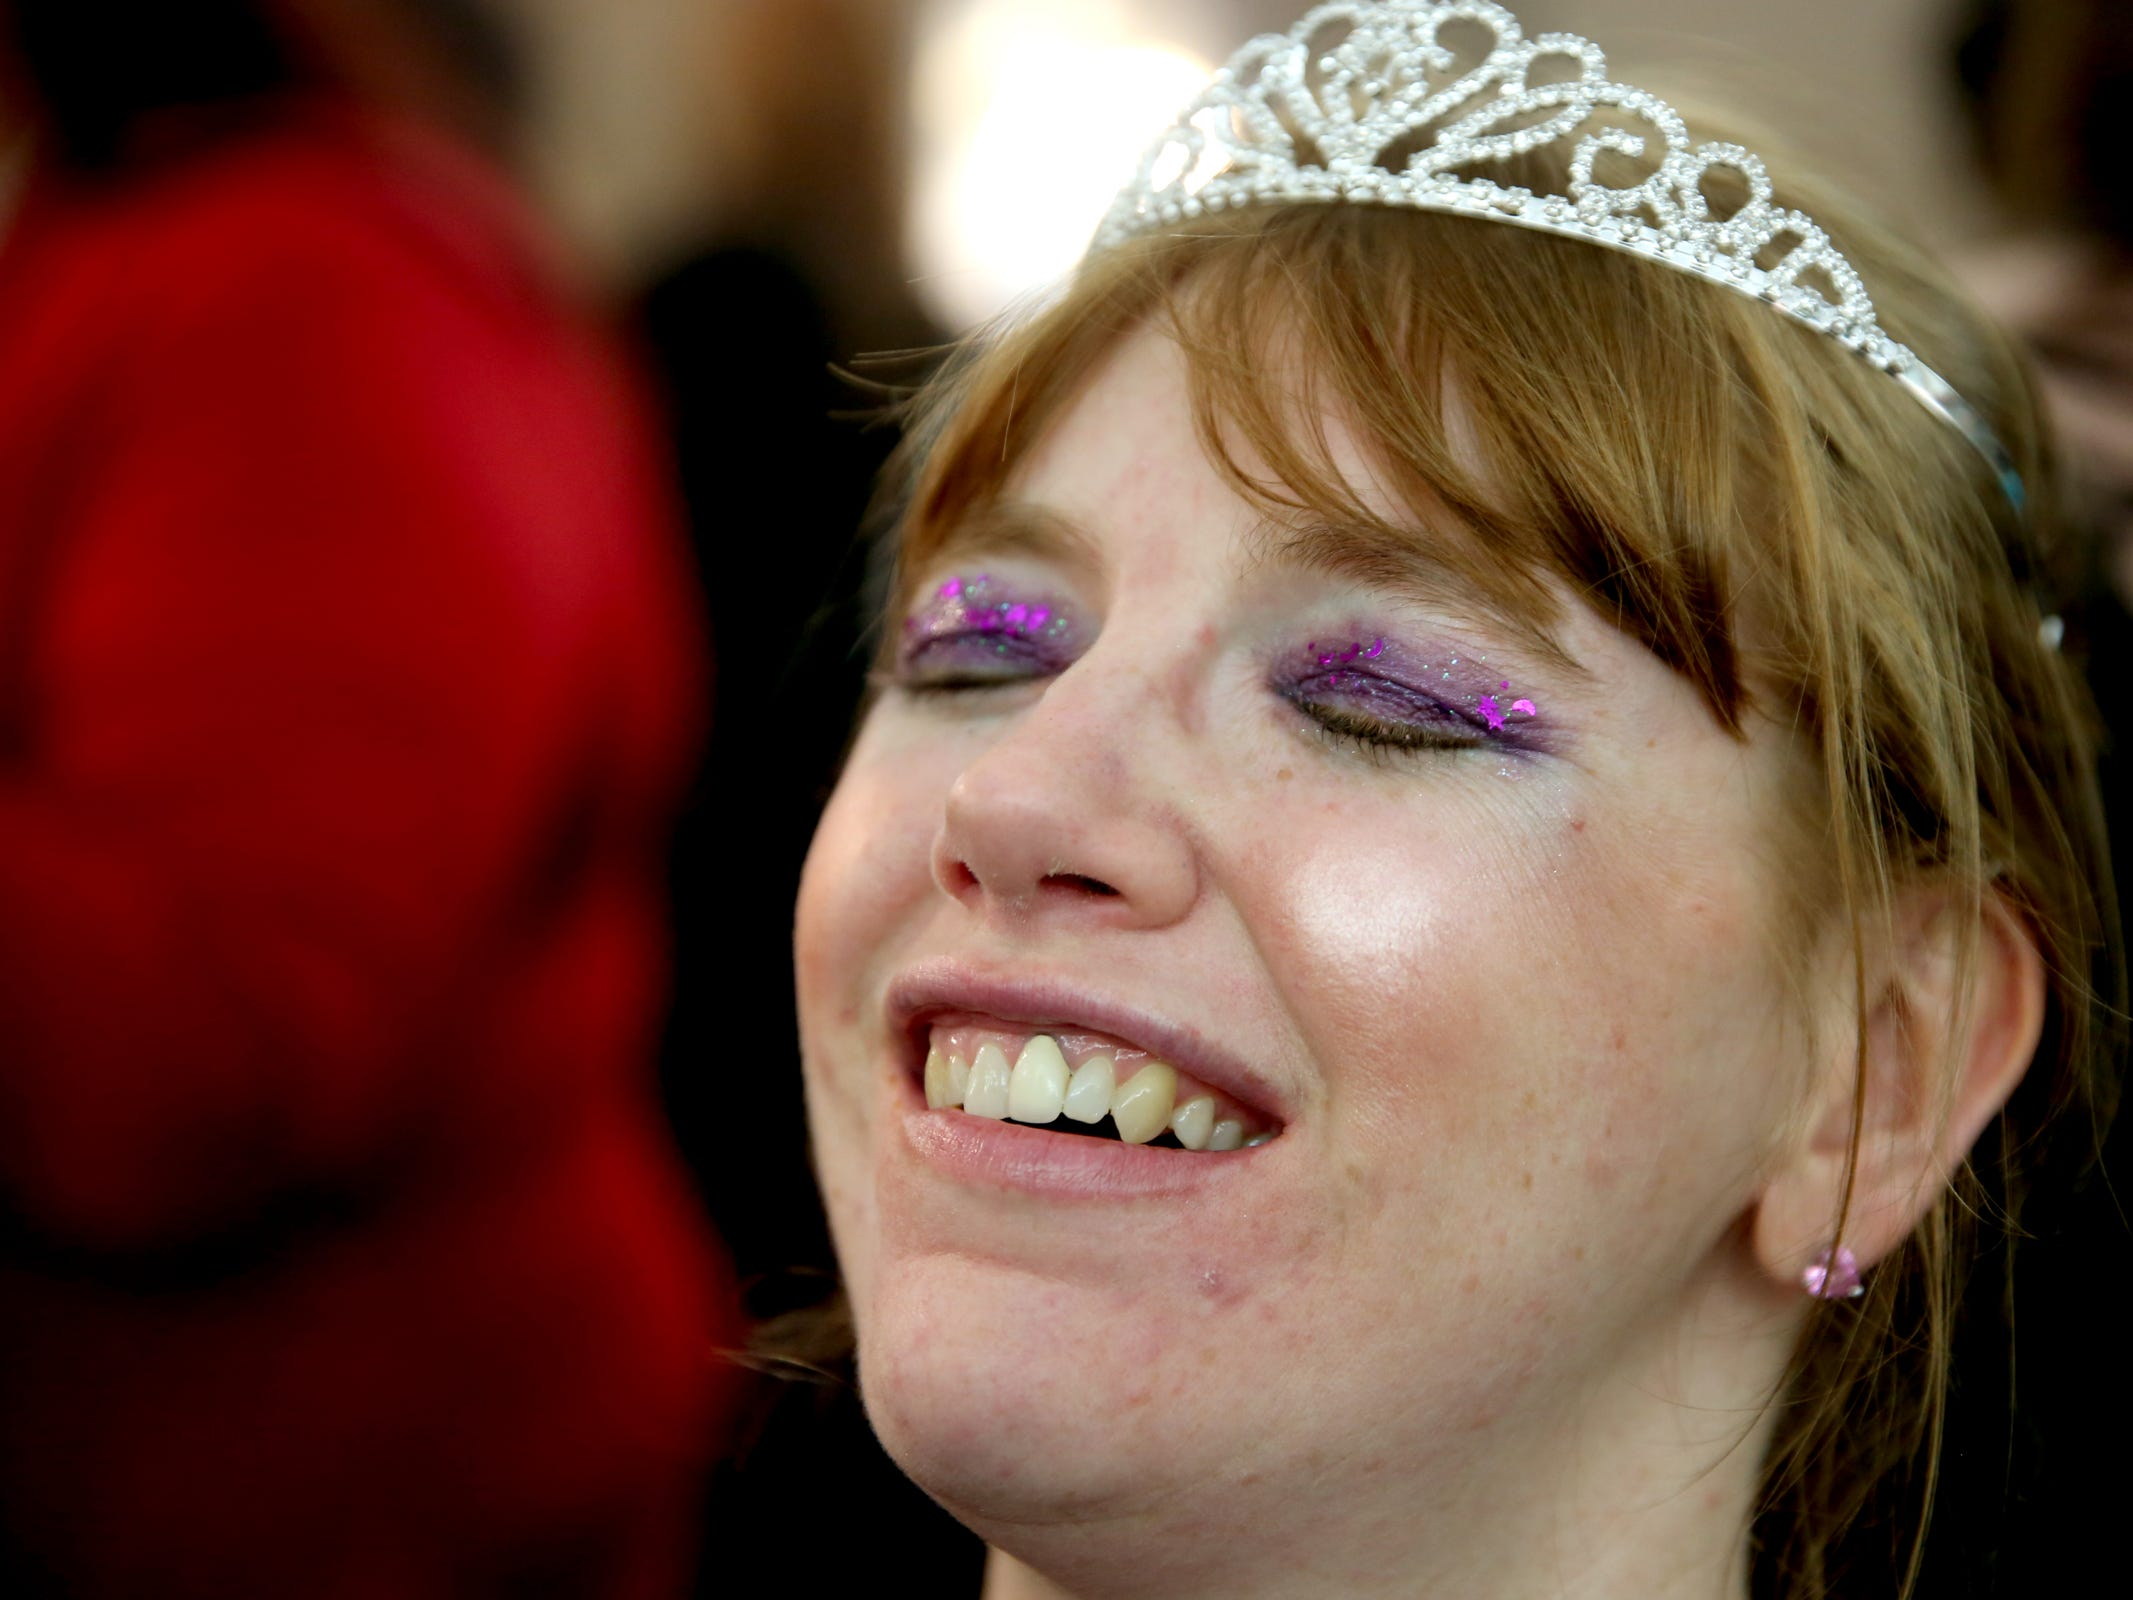 Kris Burden, 36, of Salem, has her makeup done by a volunteer at Night to Shine, a prom night experience for people with special needs, at Salem Alliance Church on Friday, Feb. 8, 2019.